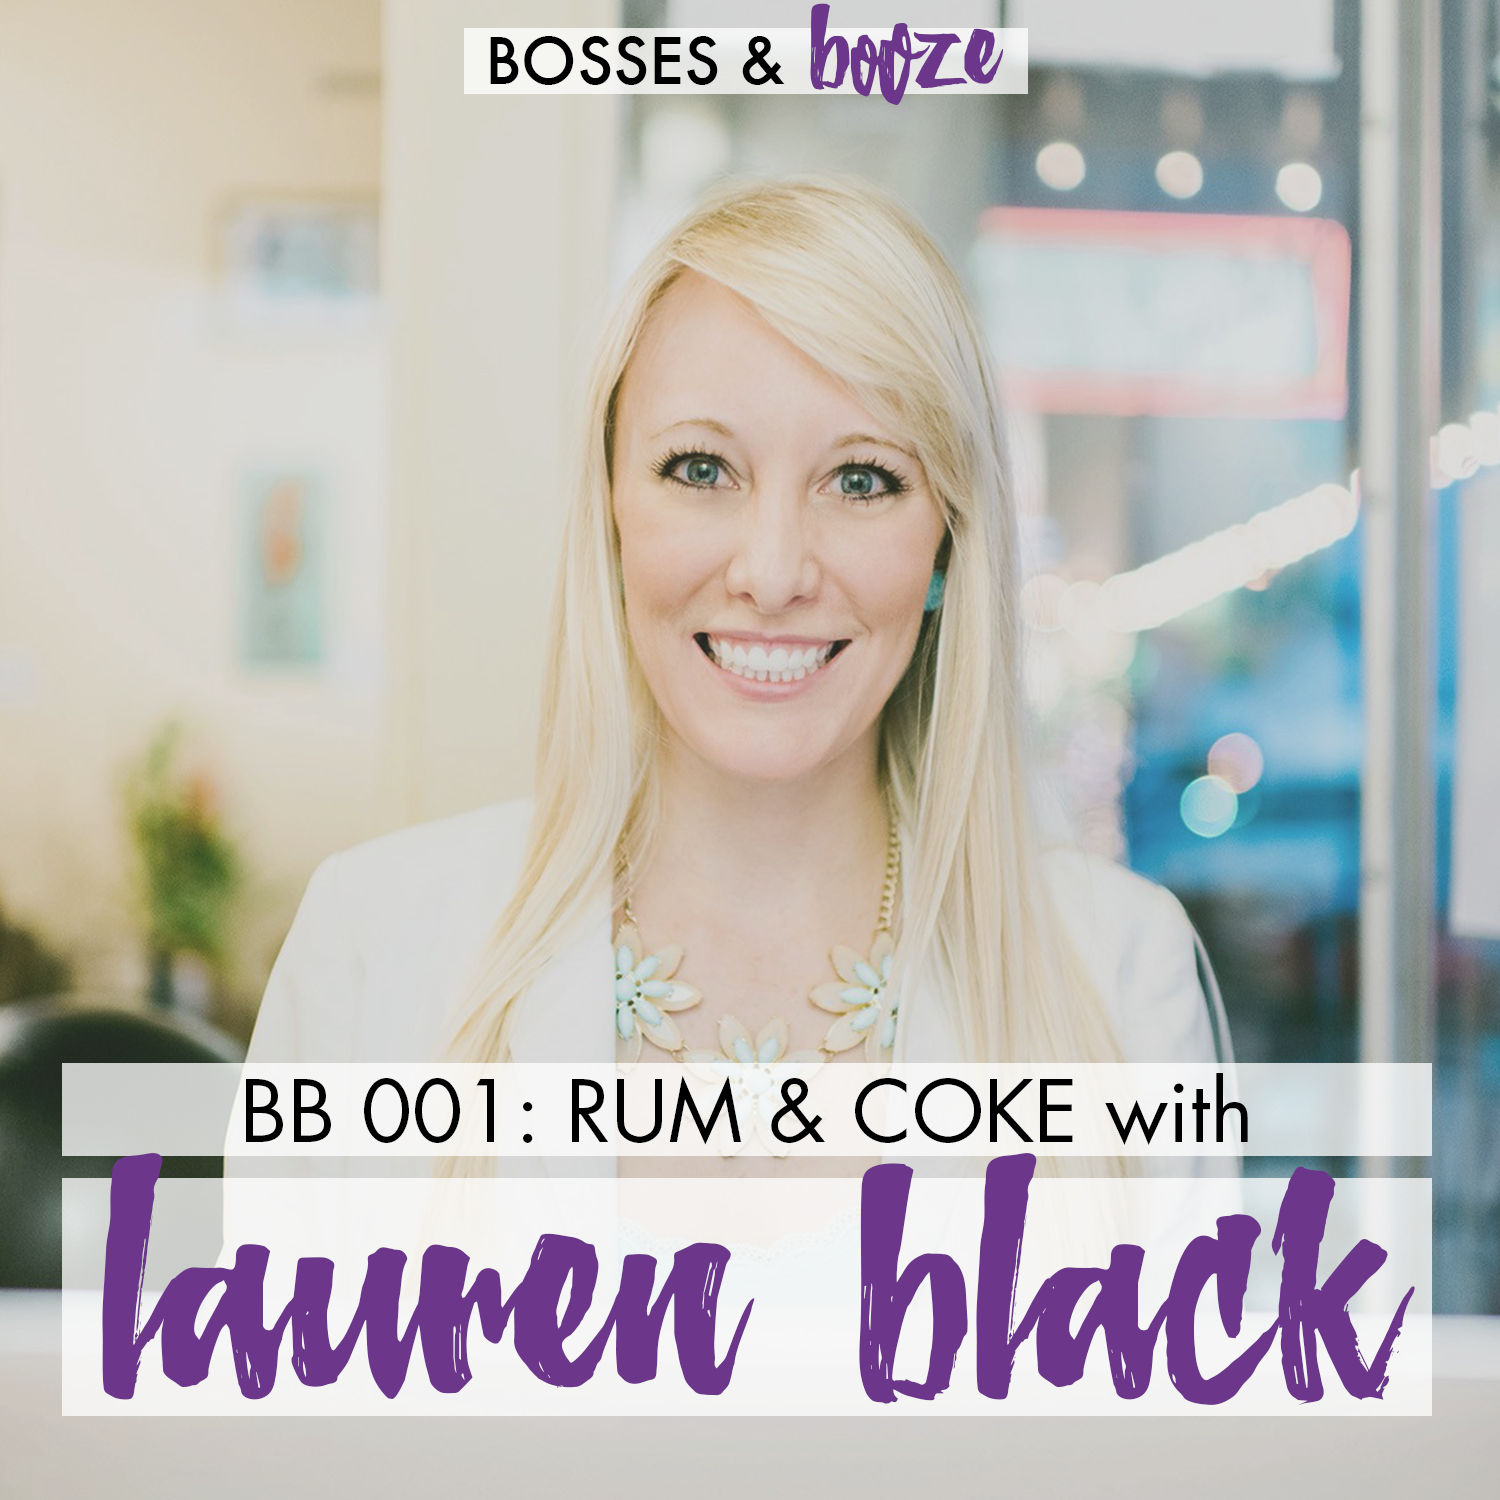 meghan-maydel-bosses-and-booze-podcast.jpg